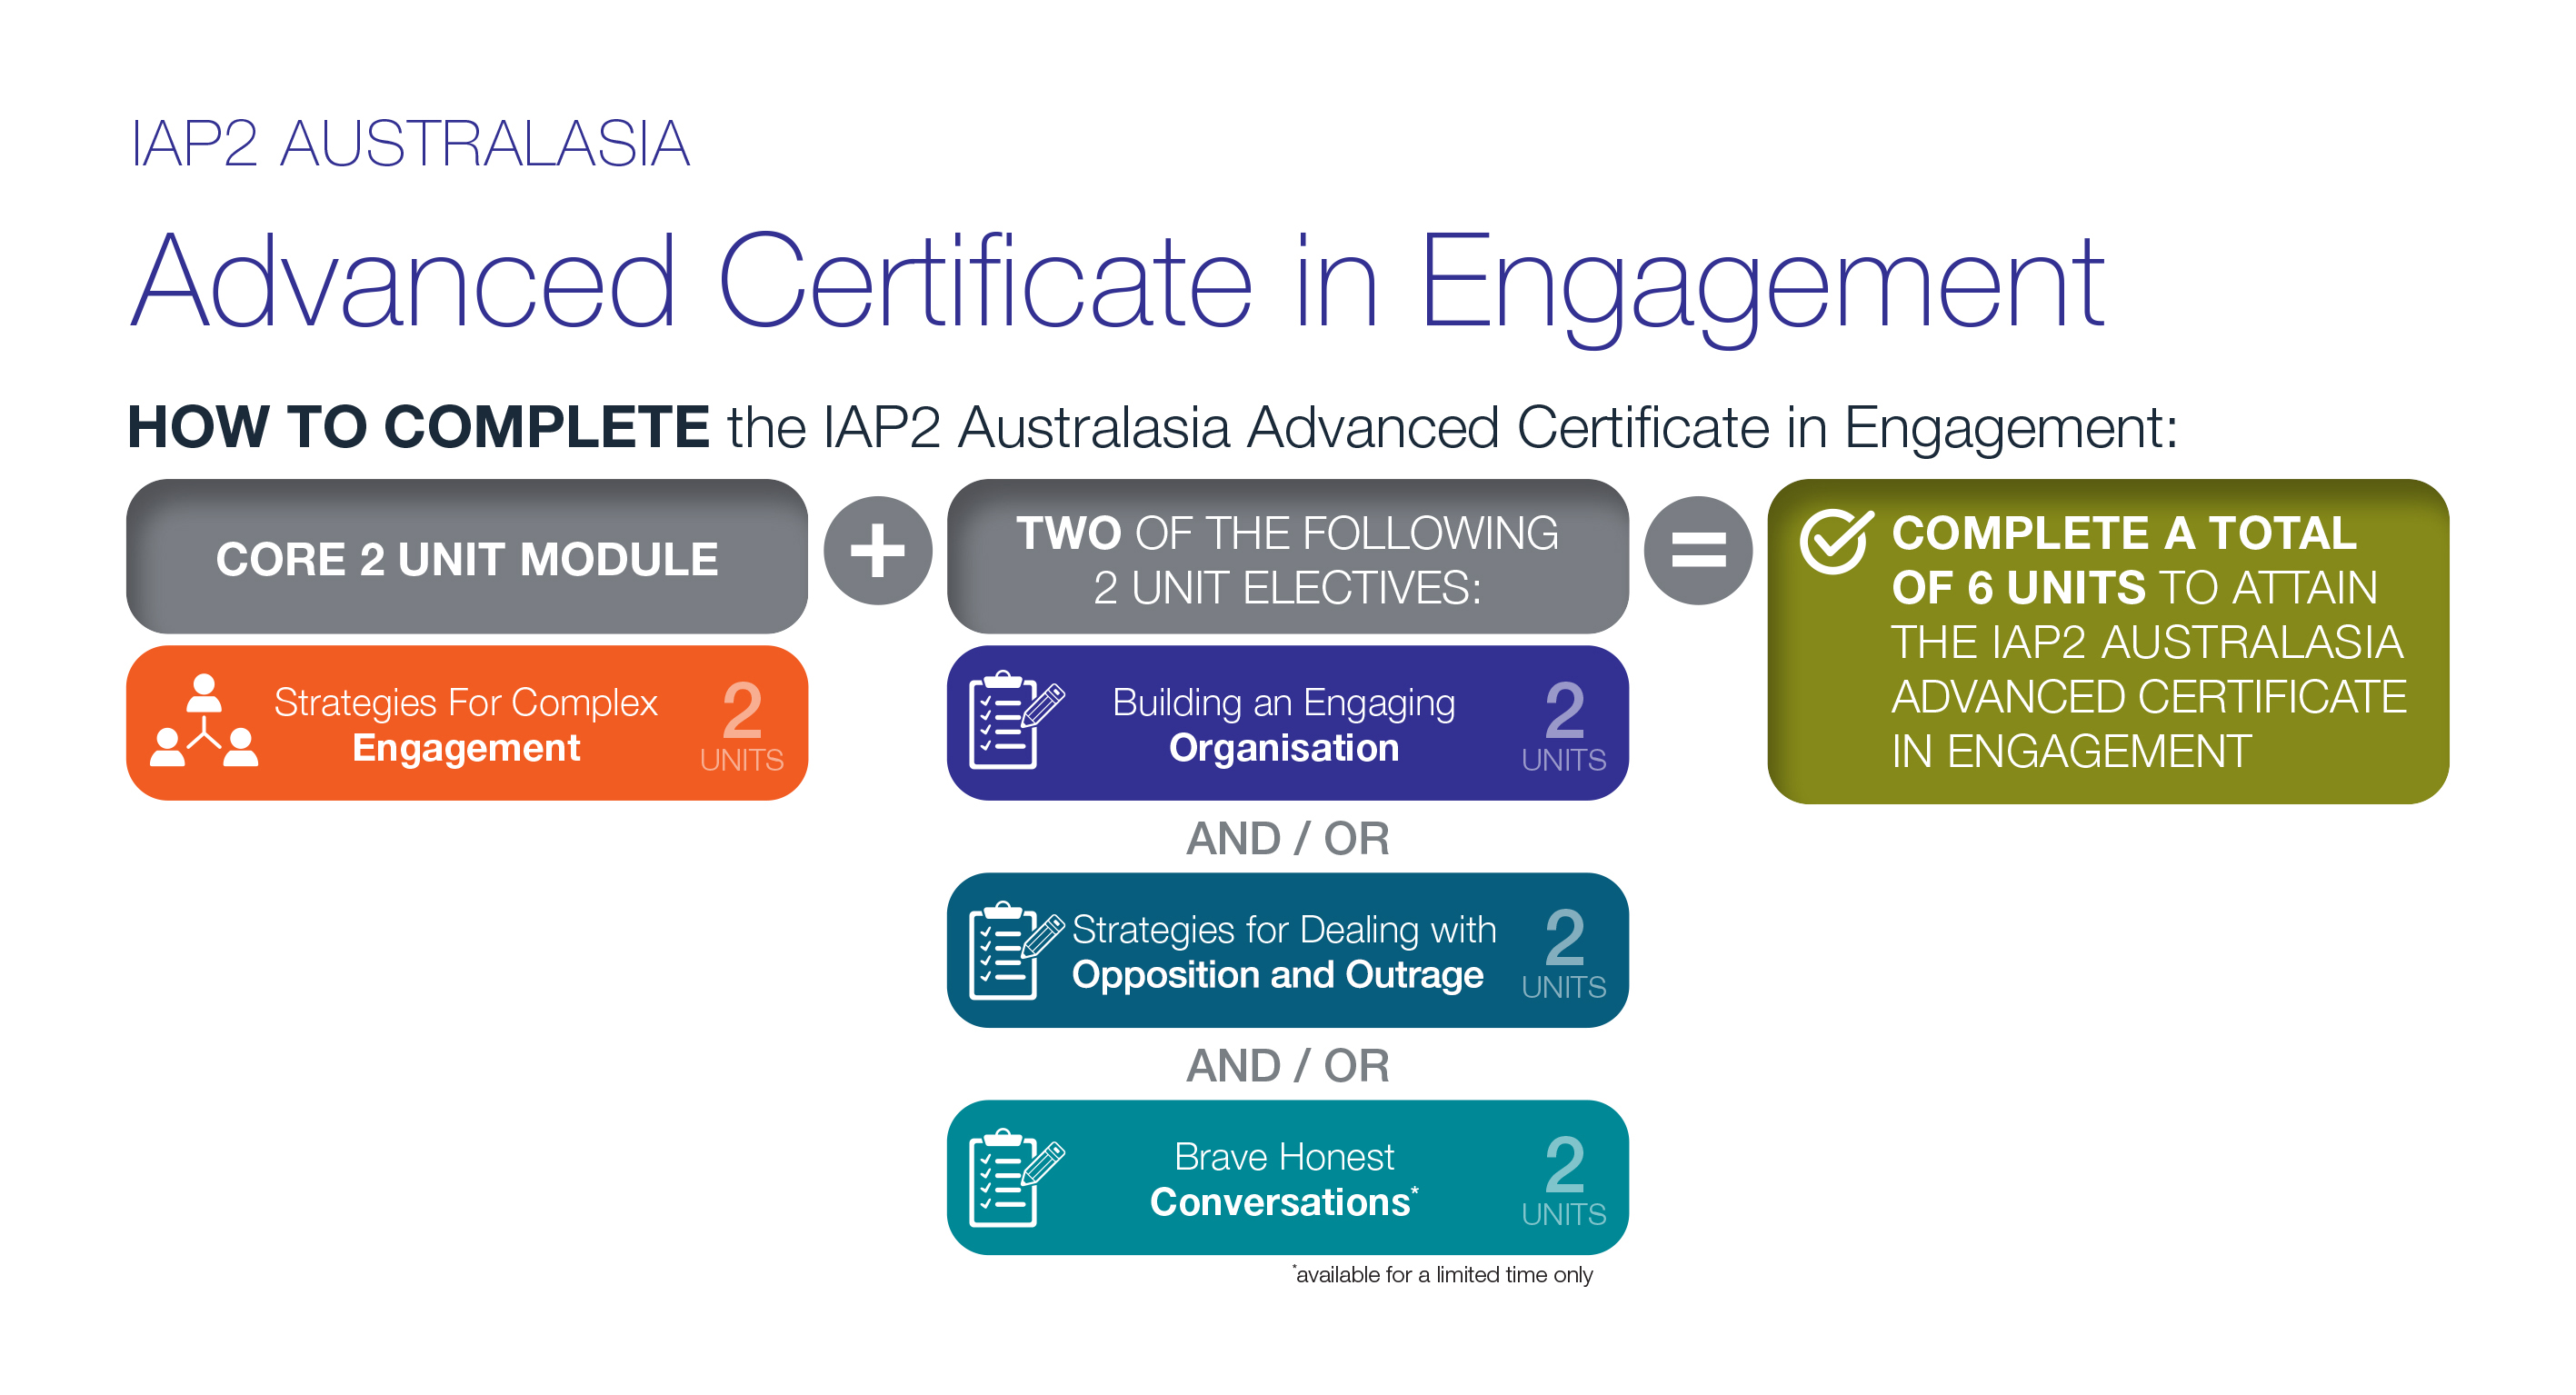 IAP2A Advanced Certificate pathway diagram